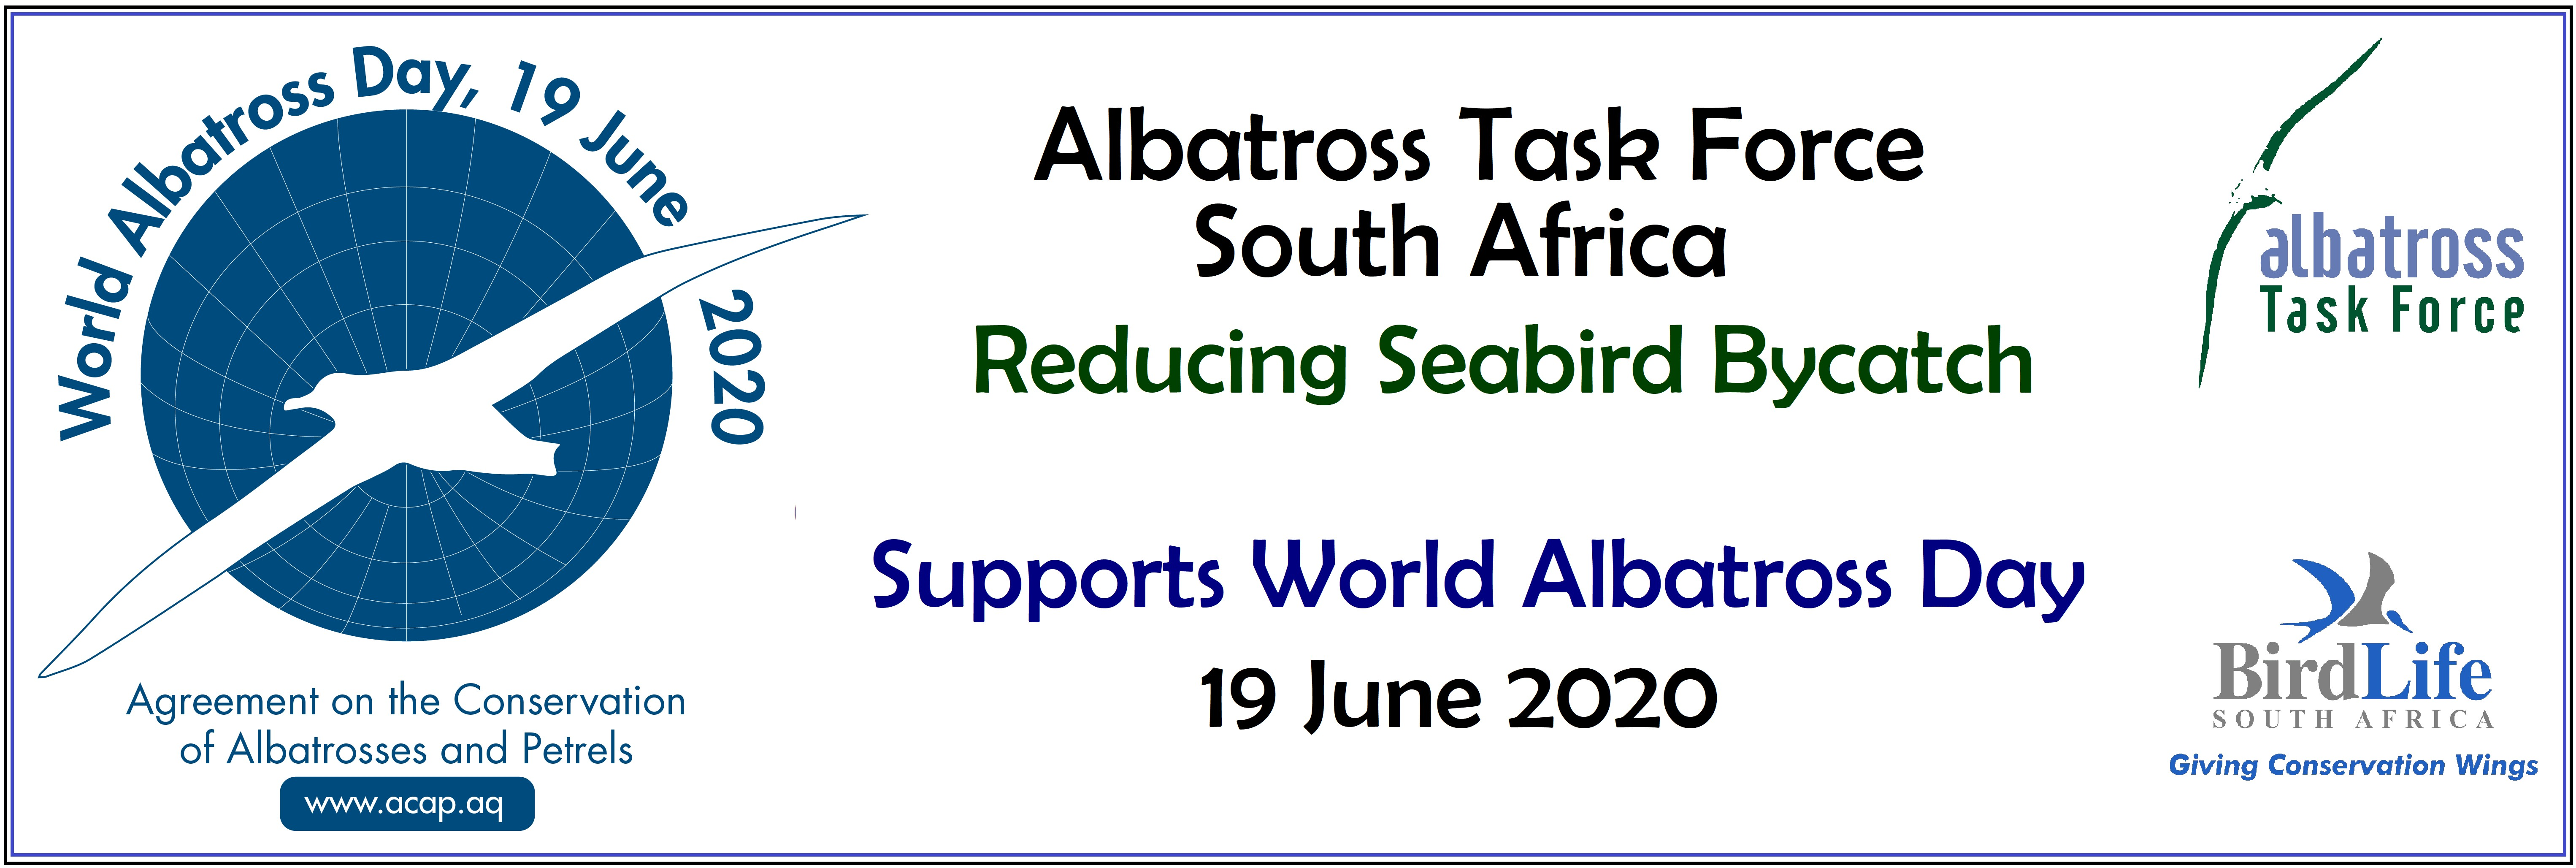 World Albatross Day SA ATF banner Jan 2020